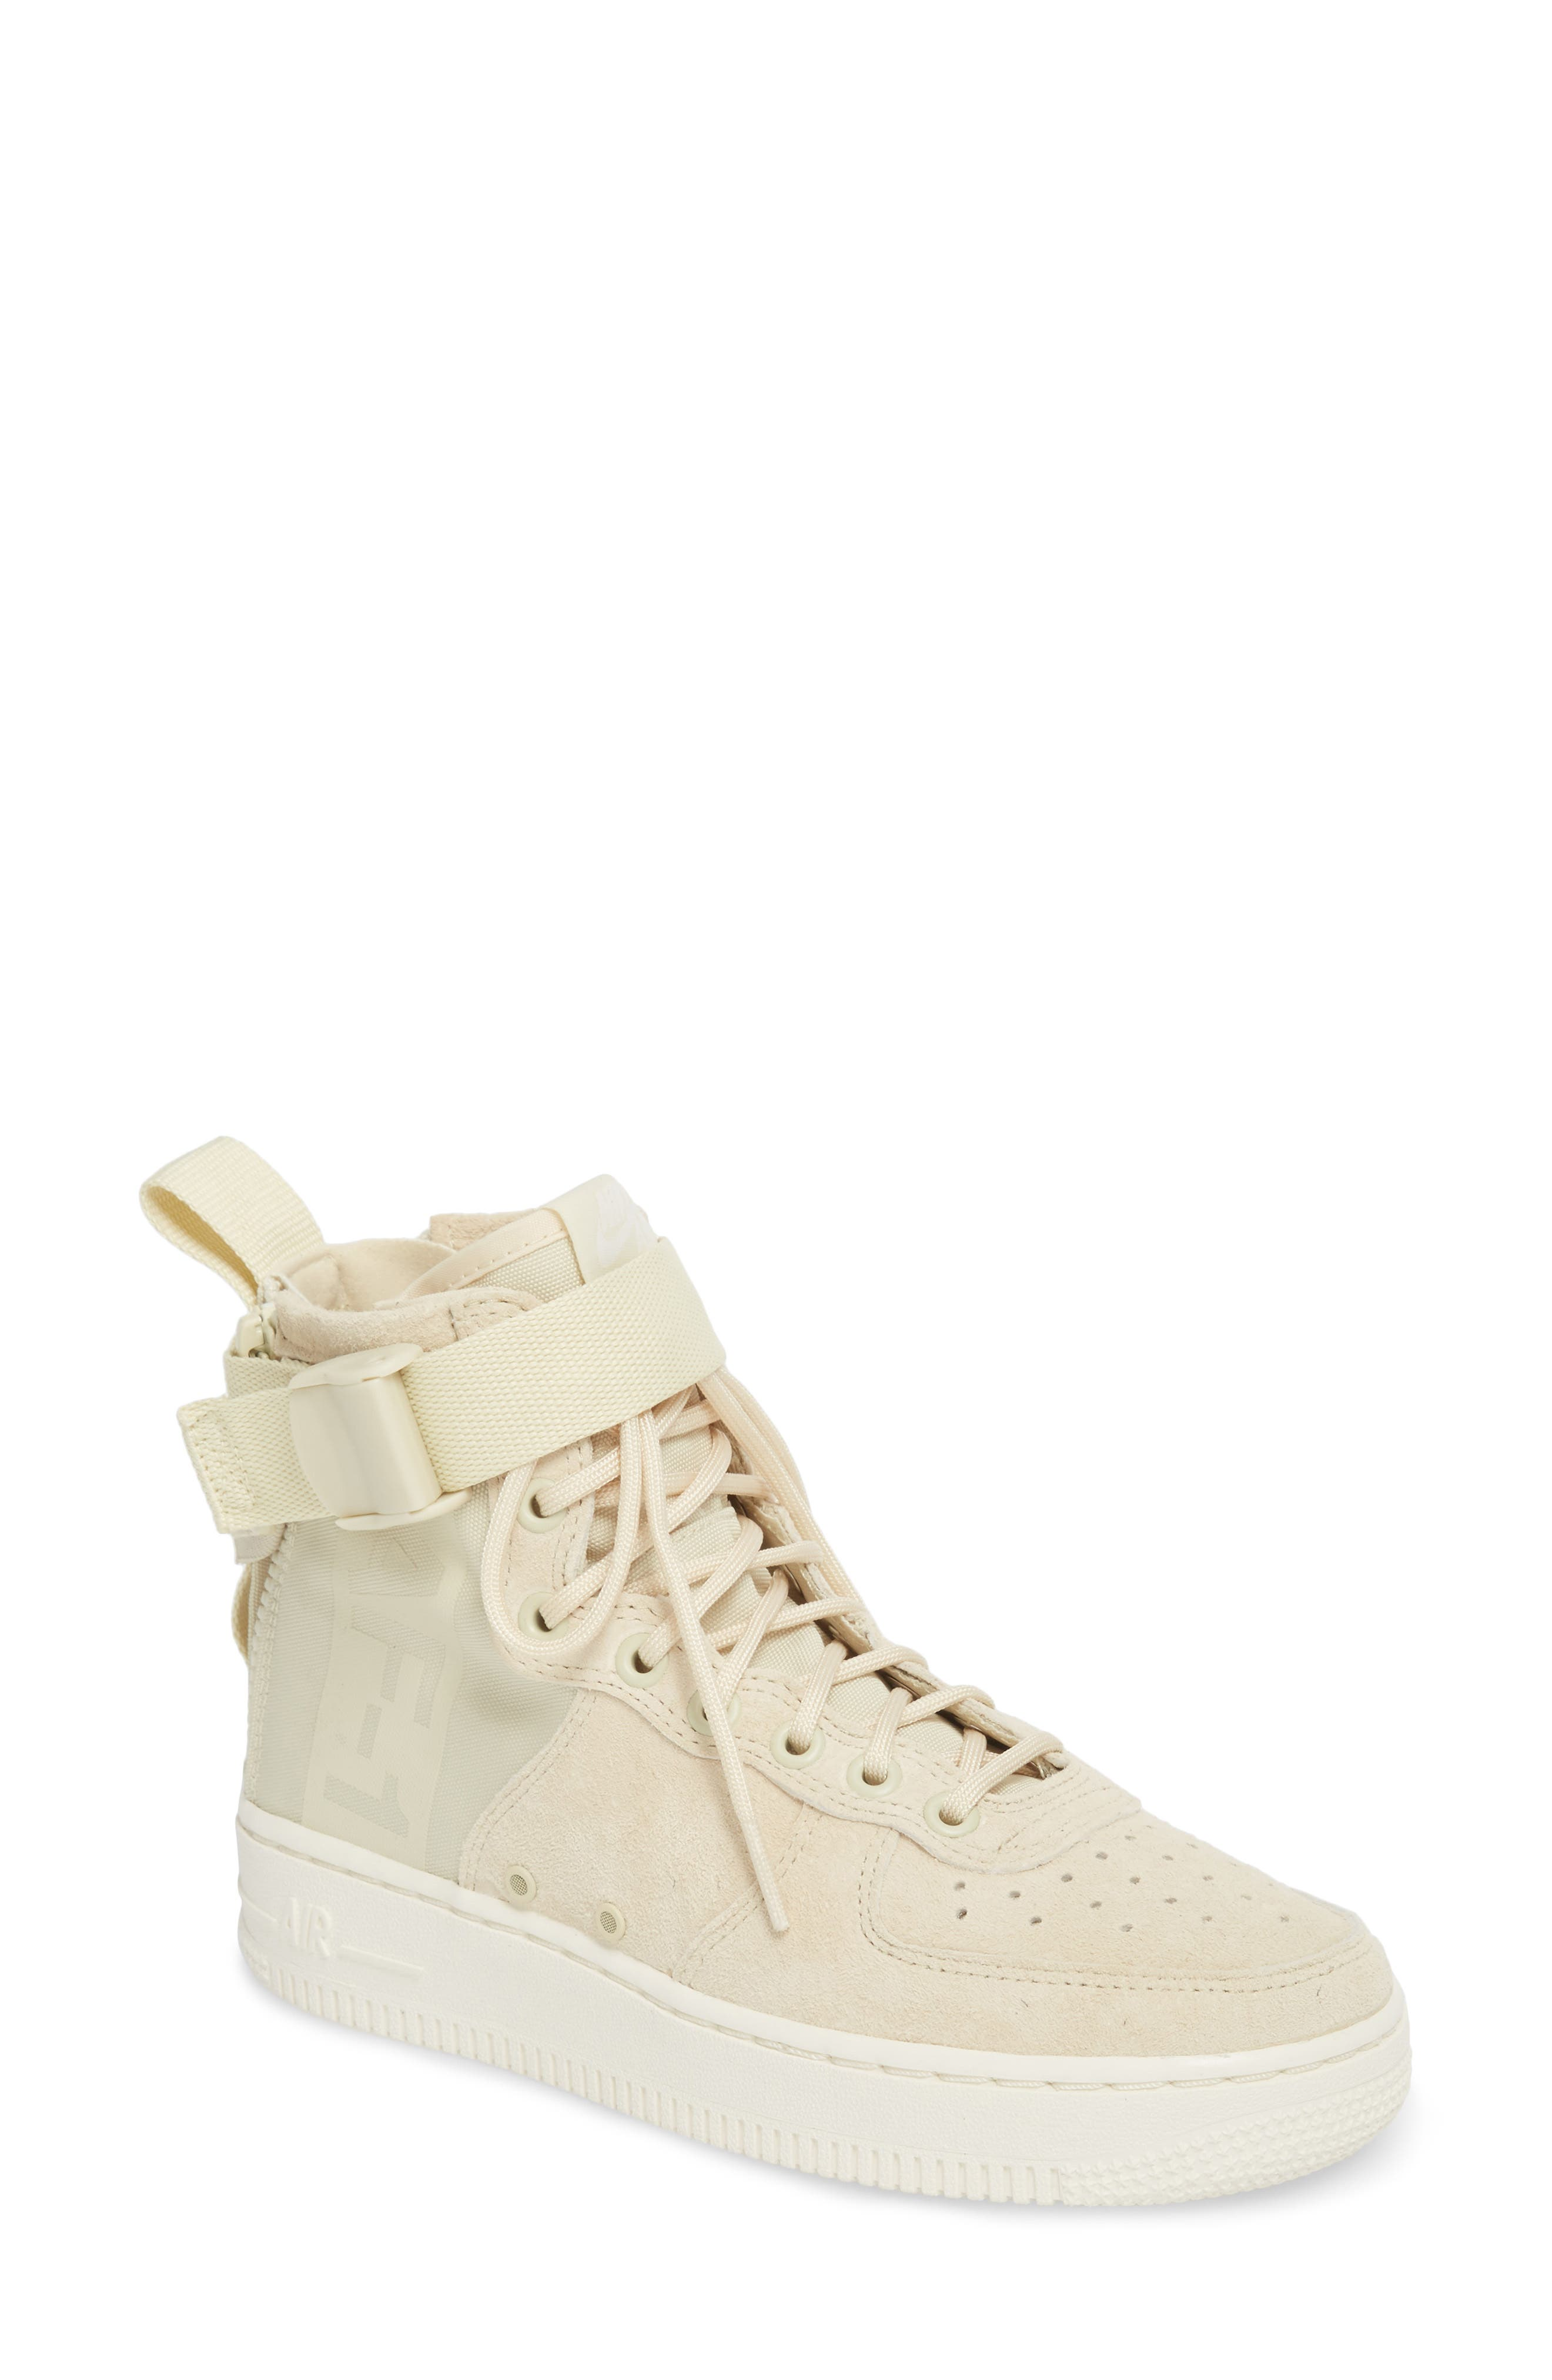 SF Air Force 1 Mid Sneaker,                             Main thumbnail 1, color,                             Fossil/ Sail